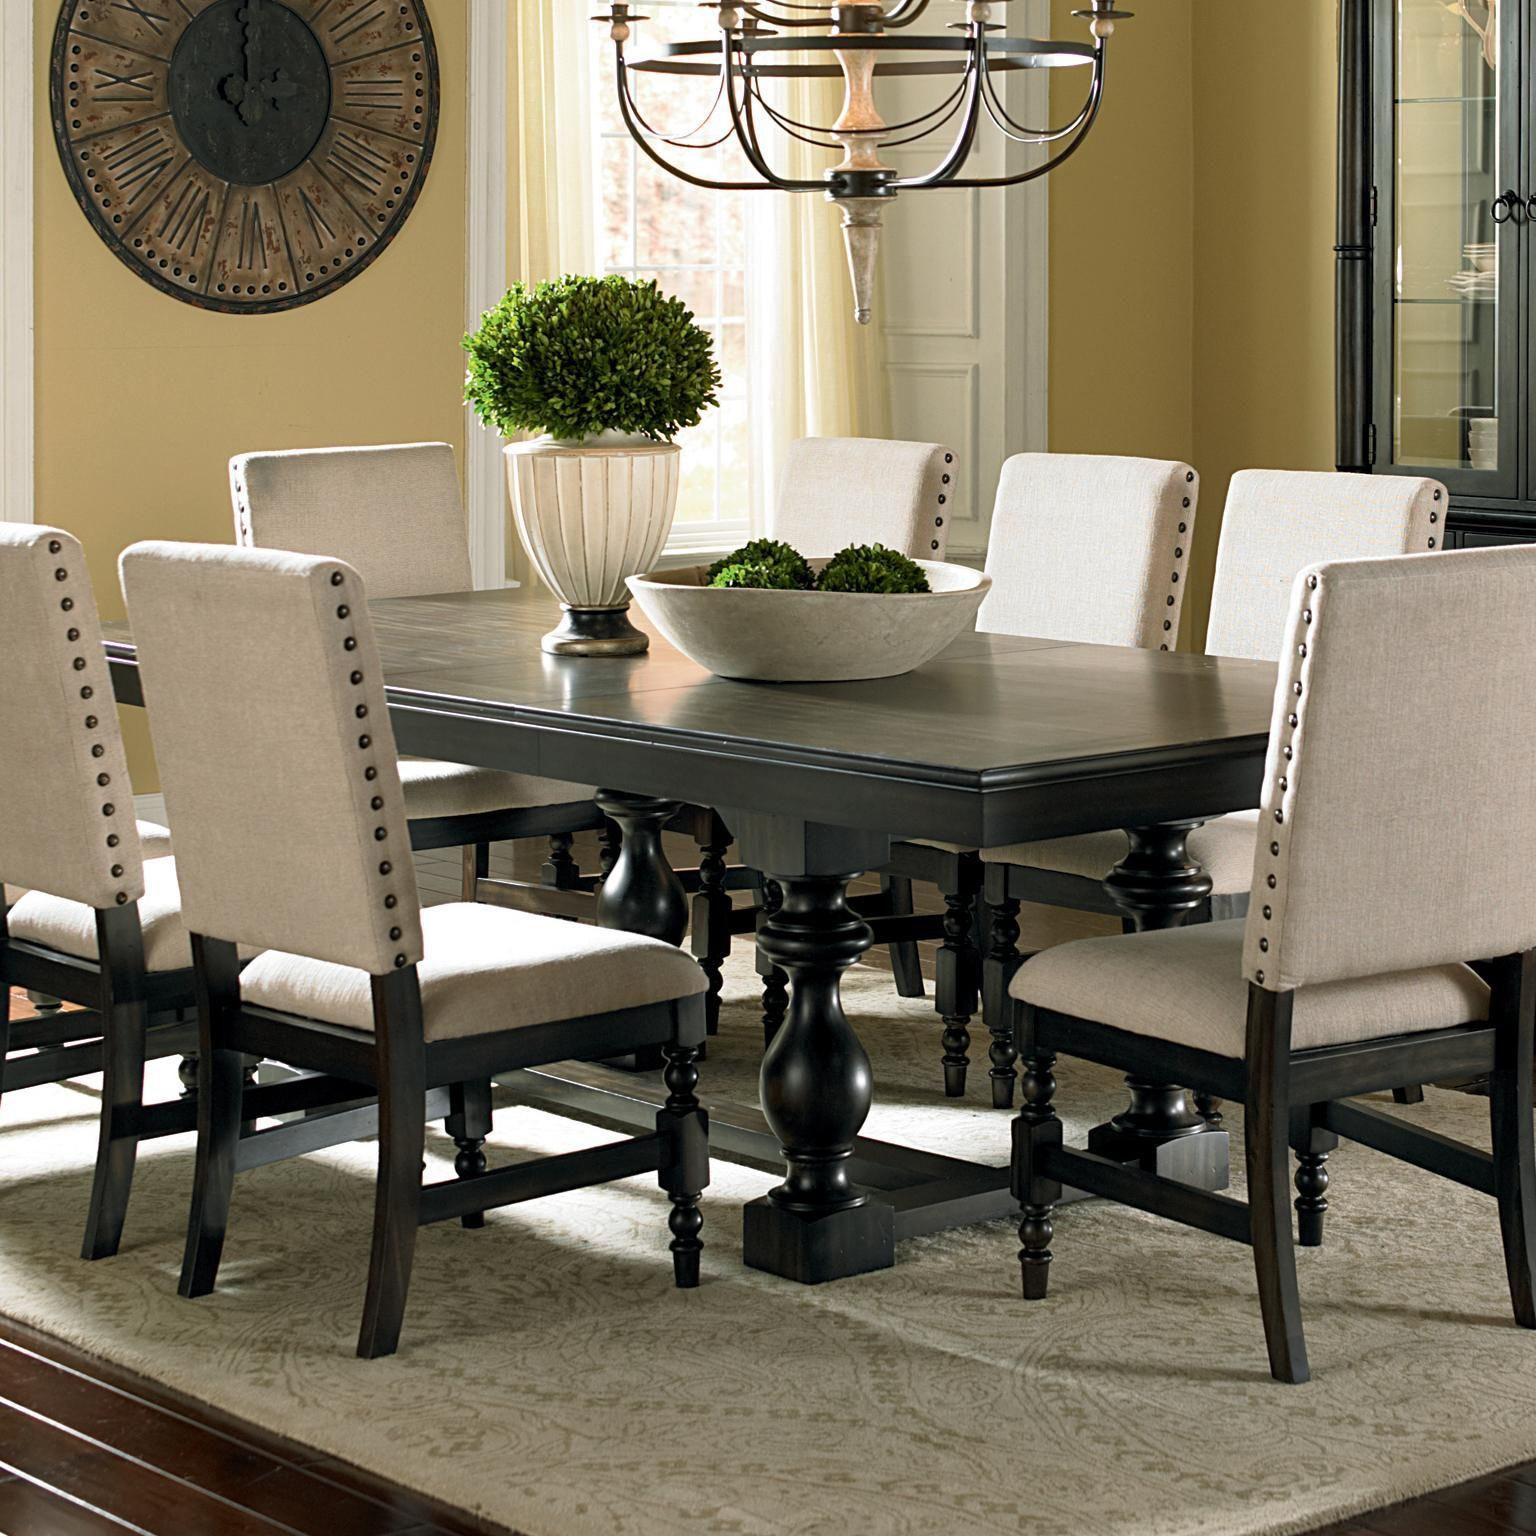 Black Dining Room Table And Chairs: Leona Cottage Rectangular Antique Black Dining Table With